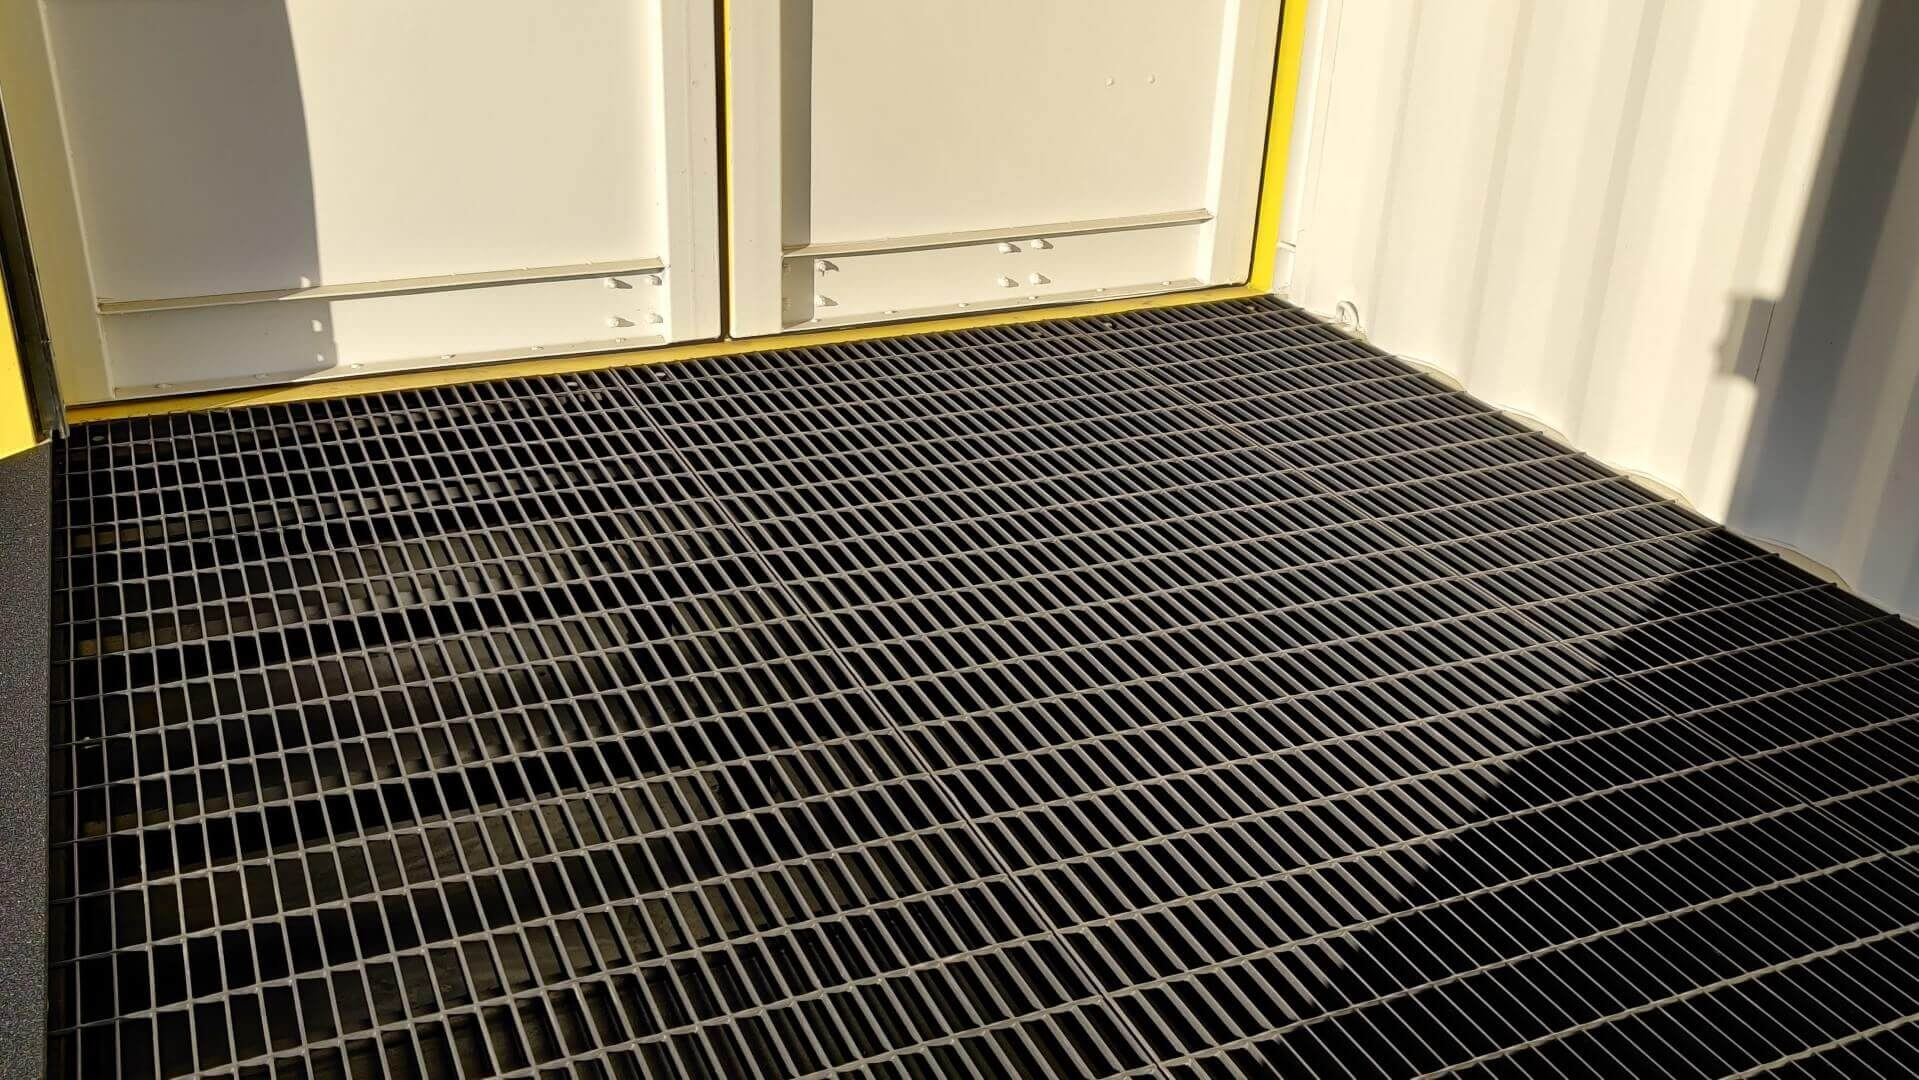 Steel bar grate flooring with containment tray